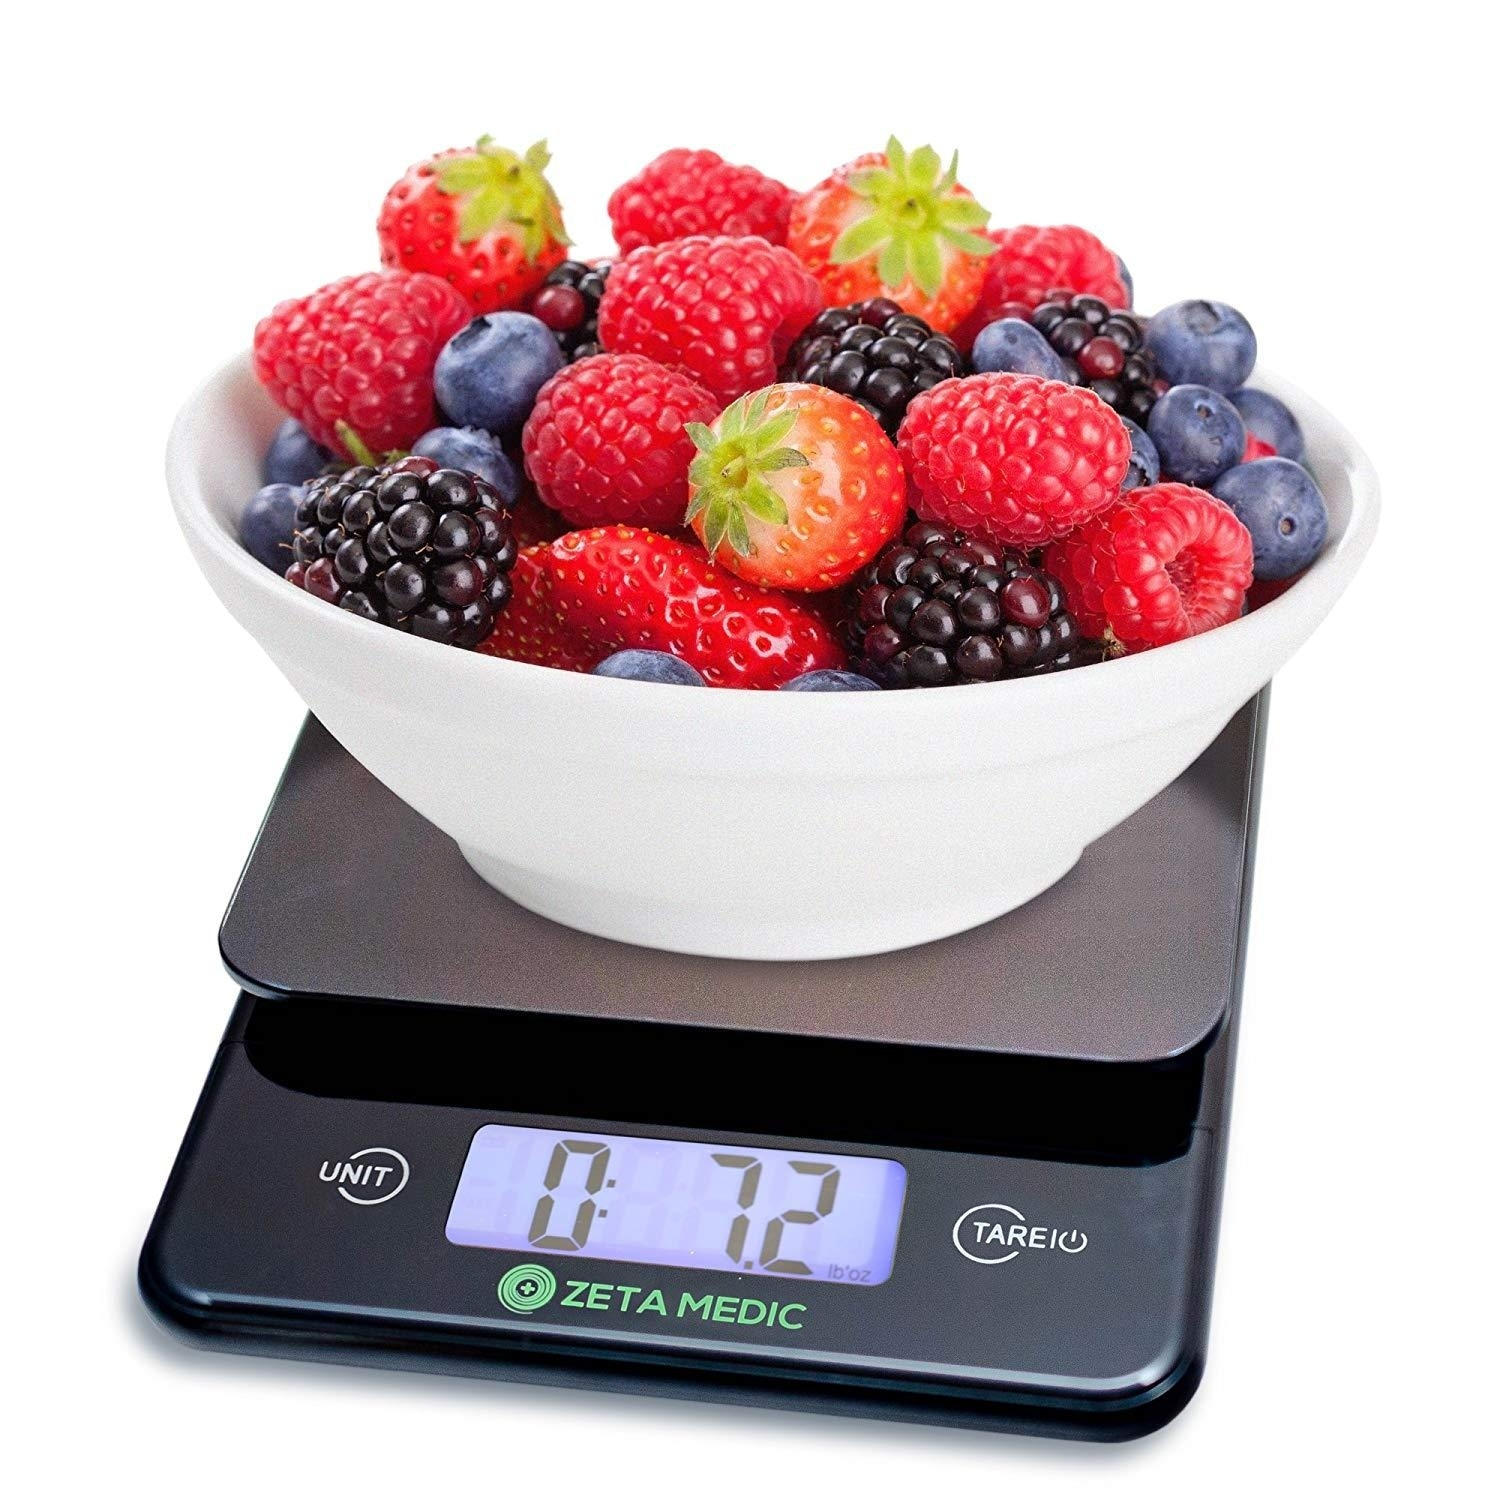 d727315c87e0 Buy Food Scales Online at Overstock | Our Best Cooking Essentials Deals